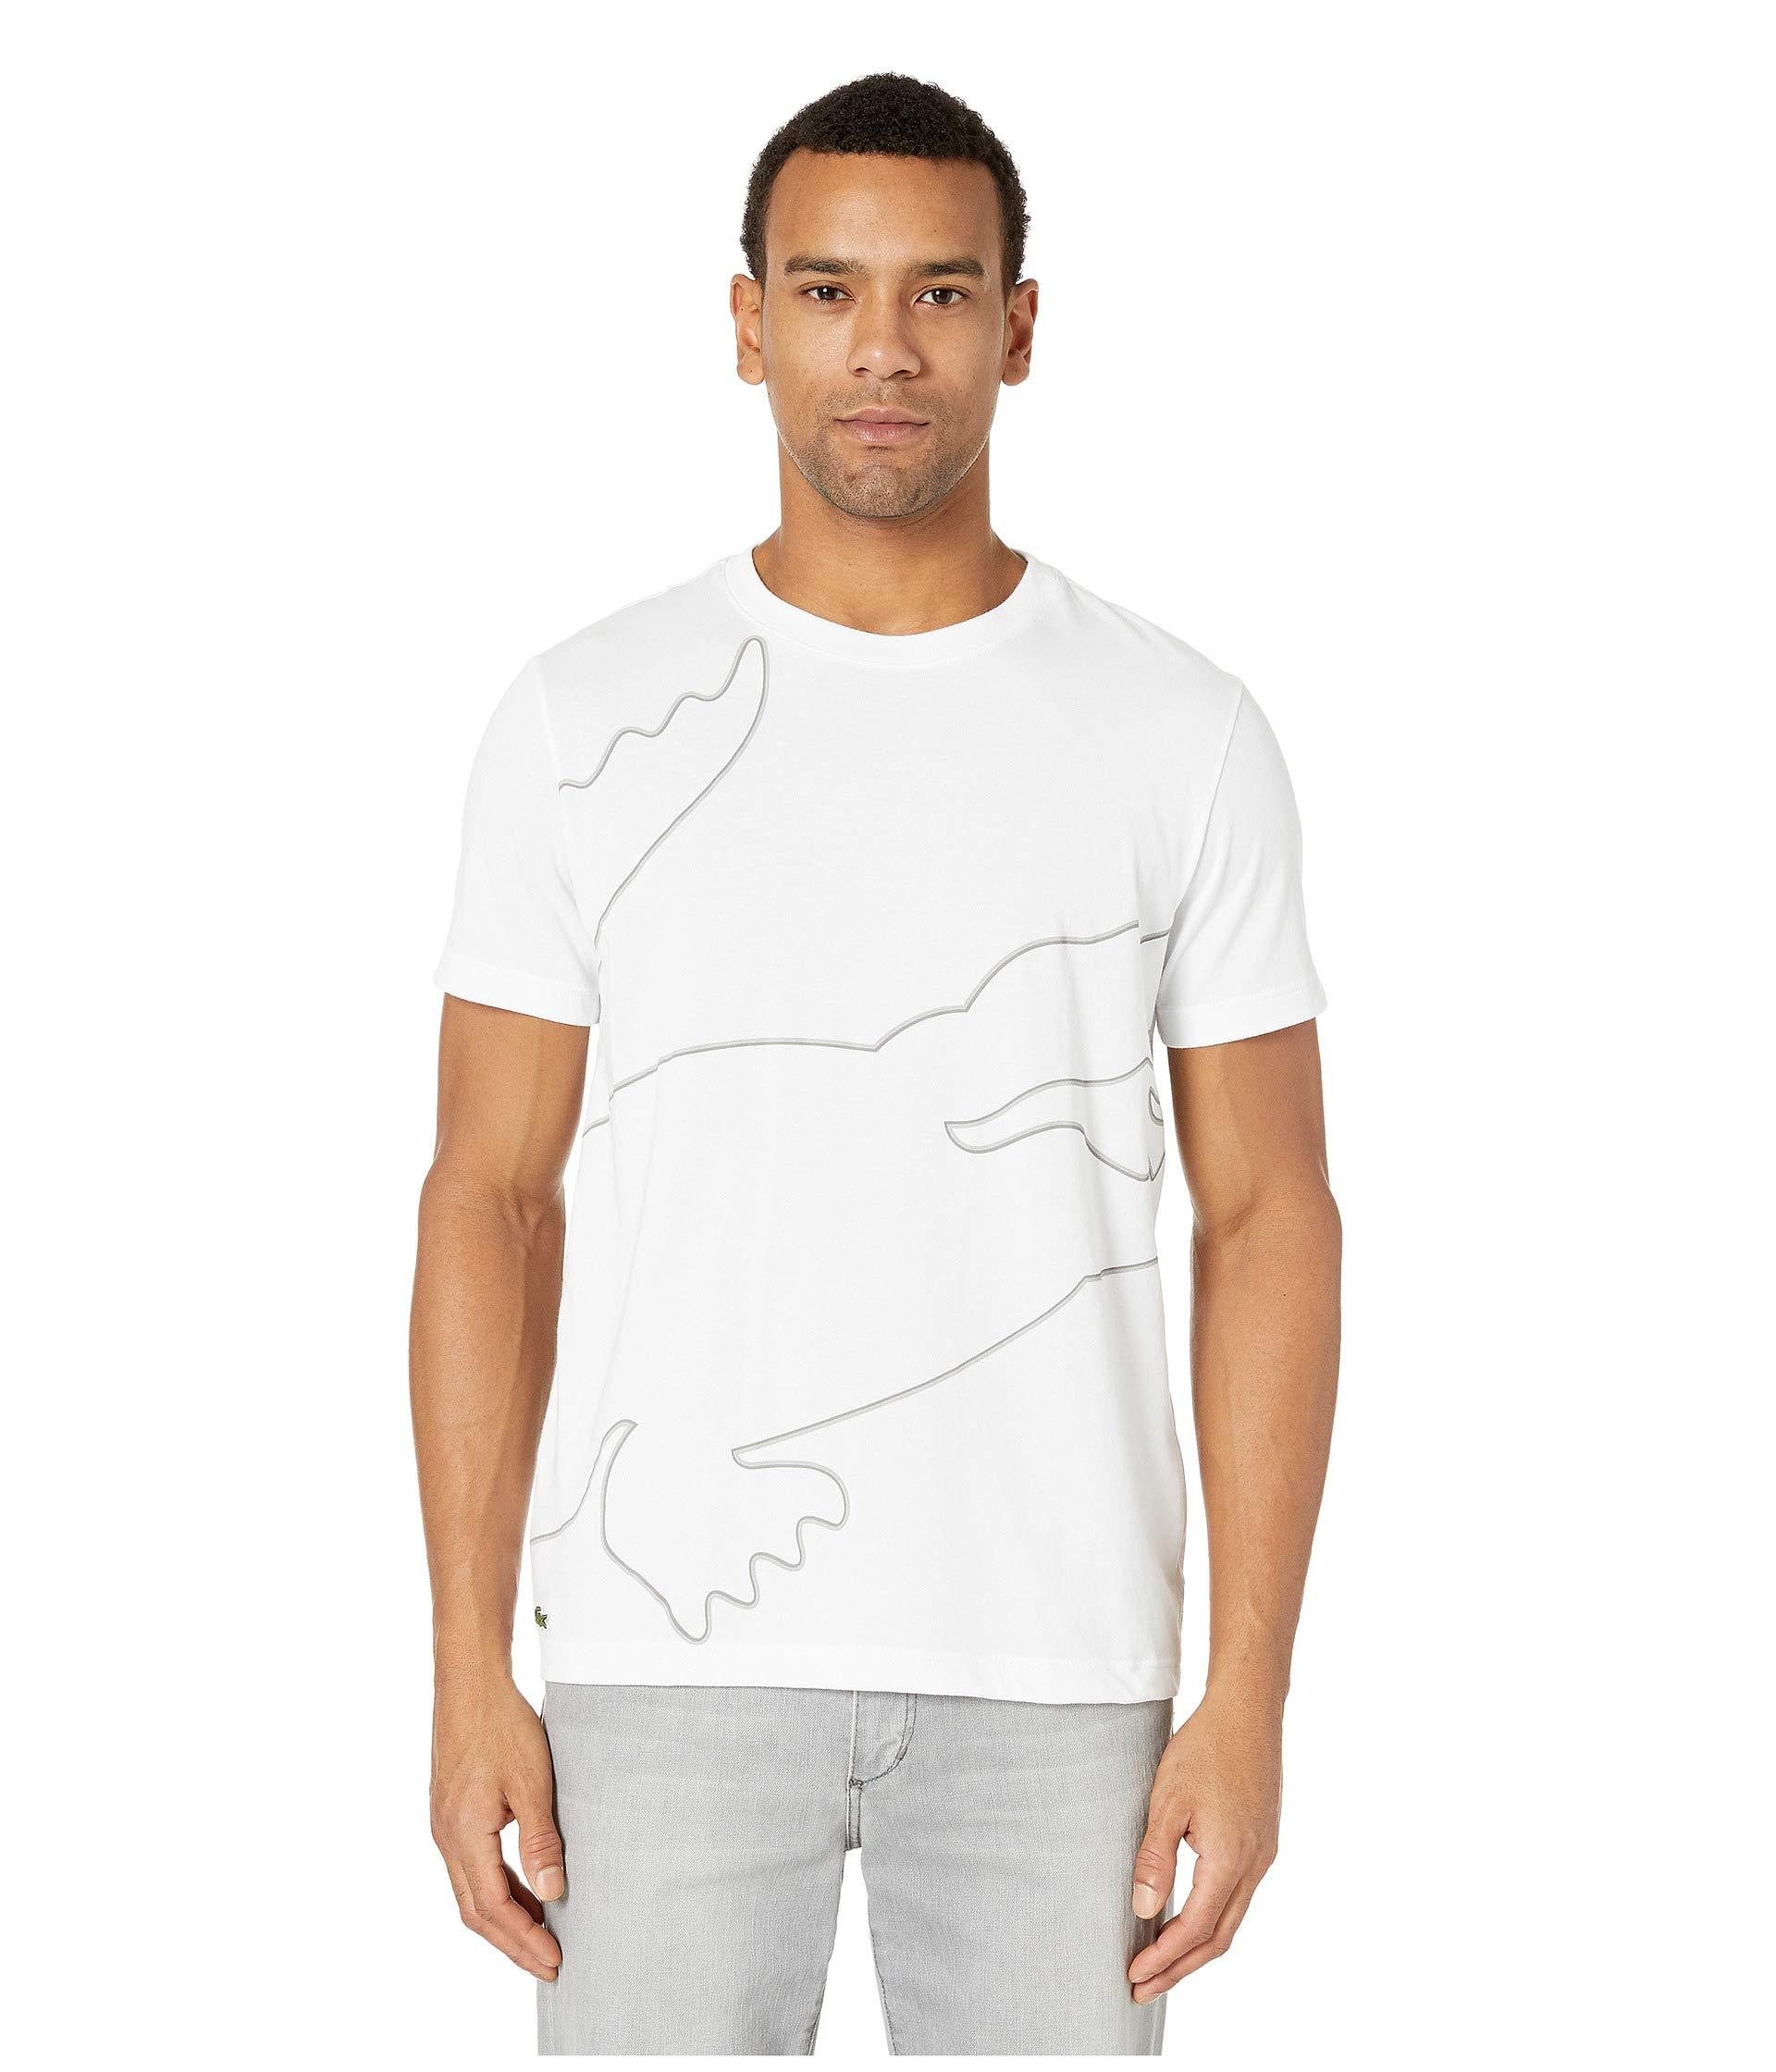 92256f69e106 Lyst - Lacoste Sport Short Sleeve Outlined Big Croc T-shirt in White ...